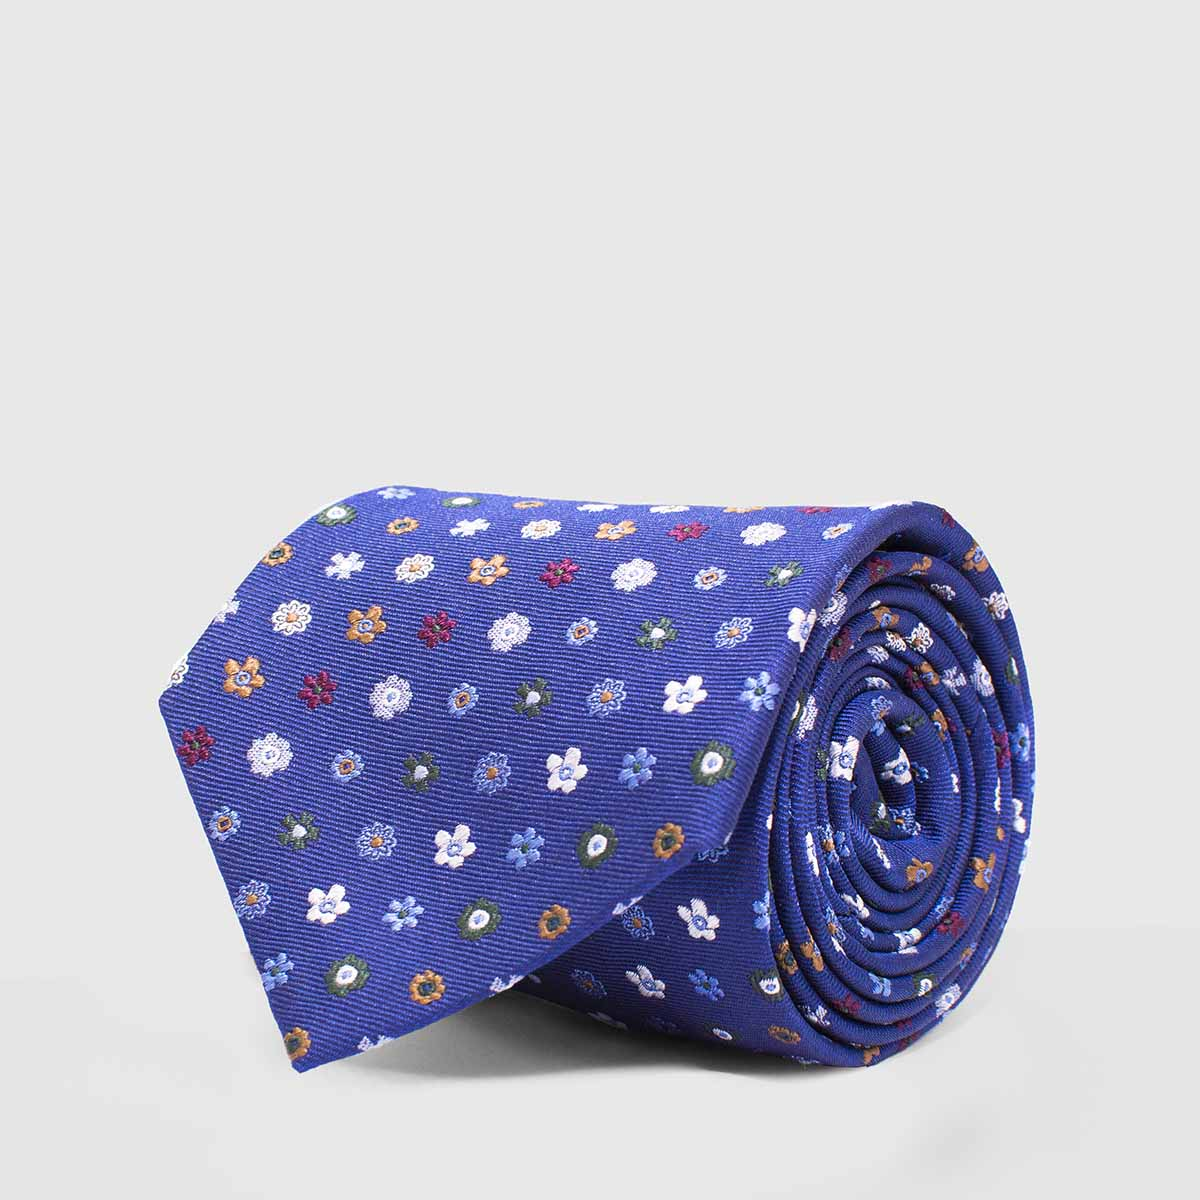 Blue 5-folds Tie with flowers of various colors